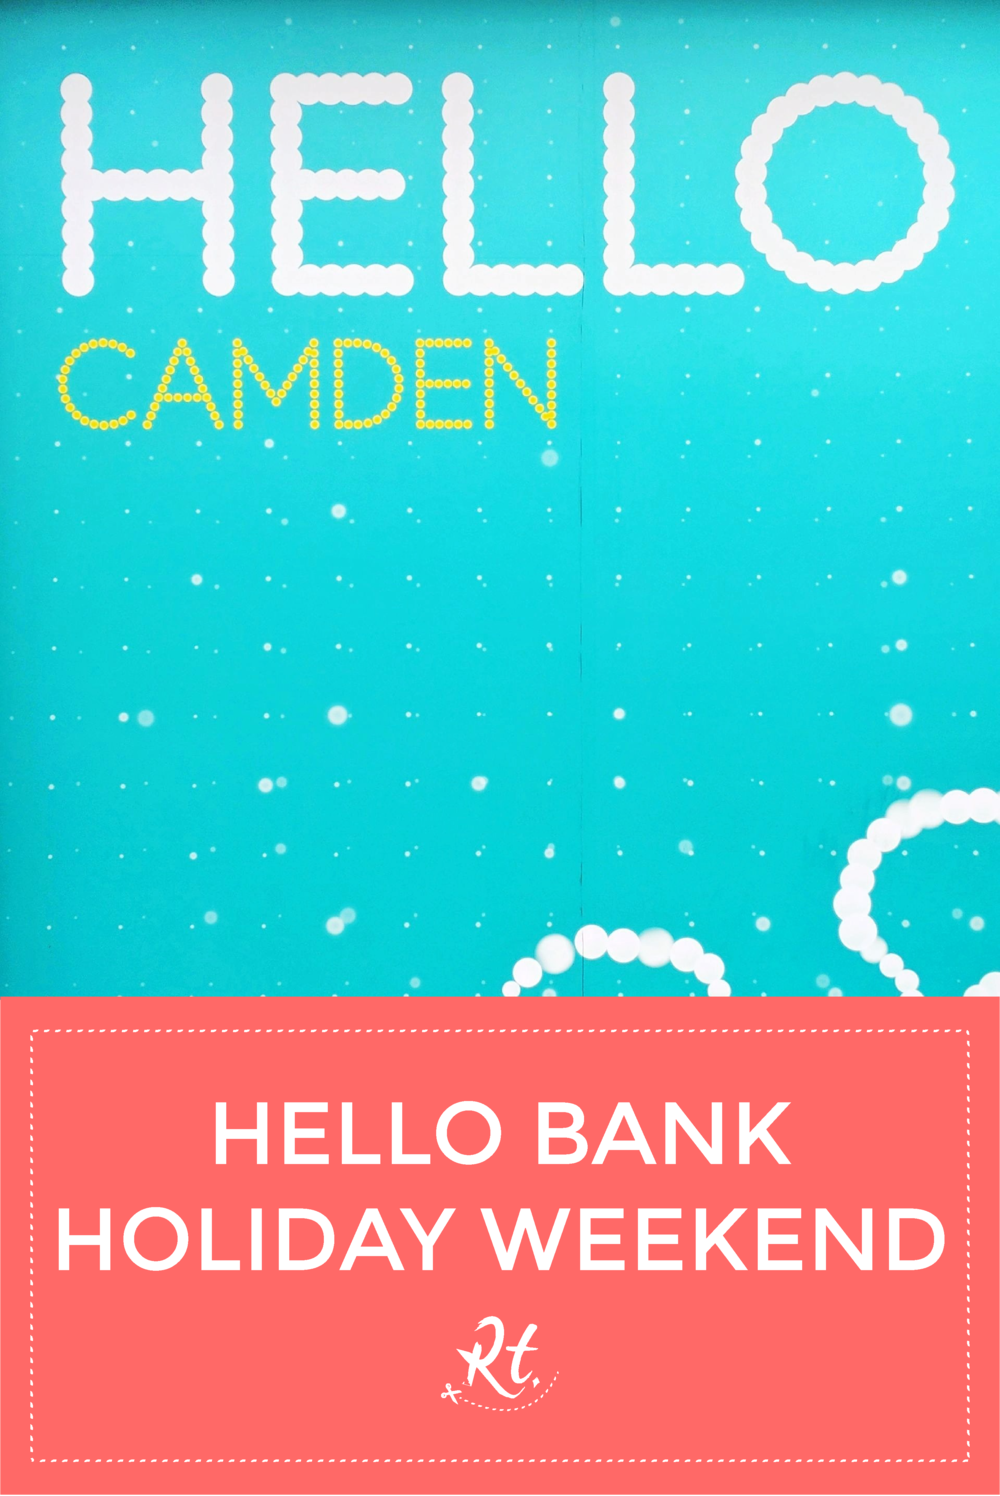 Hello Bank Holiday Weekend by Rosh Thanki, EE Advert in Camden Town